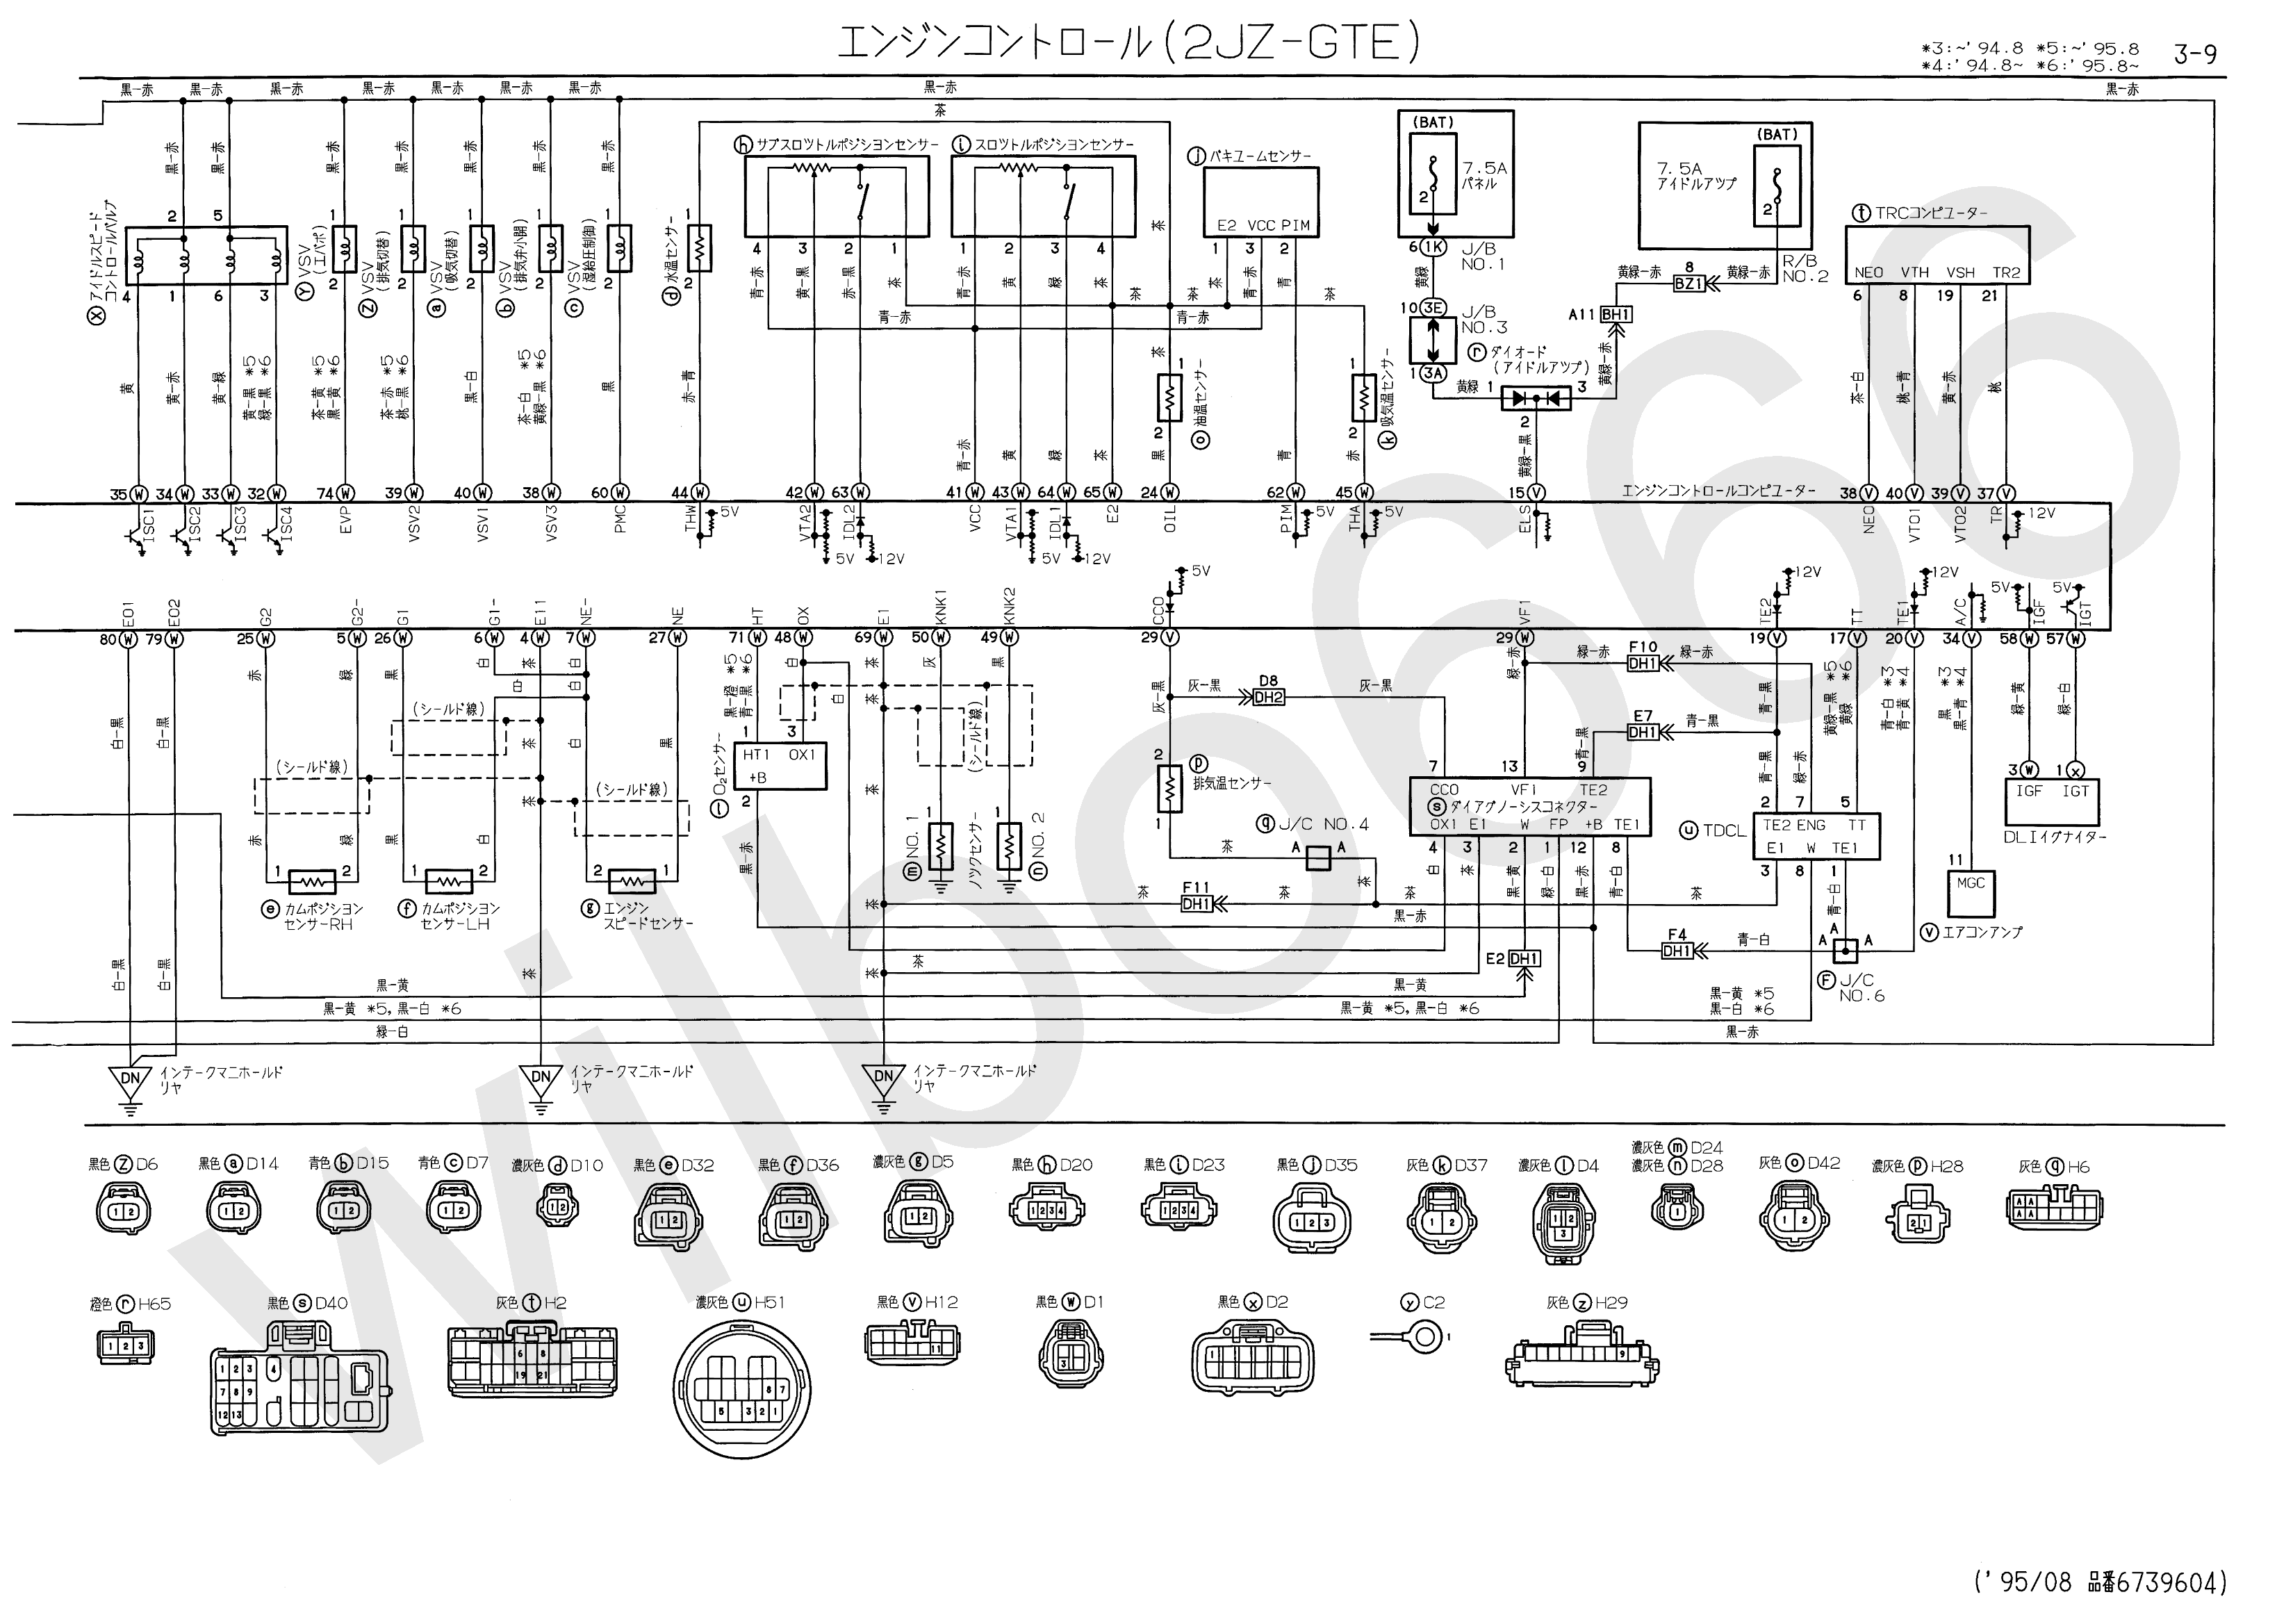 JZS14%23%2C+UZS14%23+Electrical+Wiring+Diagram+6739604+3 9 2jz wiring diagram wiring diagram ground symbol \u2022 wiring diagrams toyota electrical wiring diagram at readyjetset.co